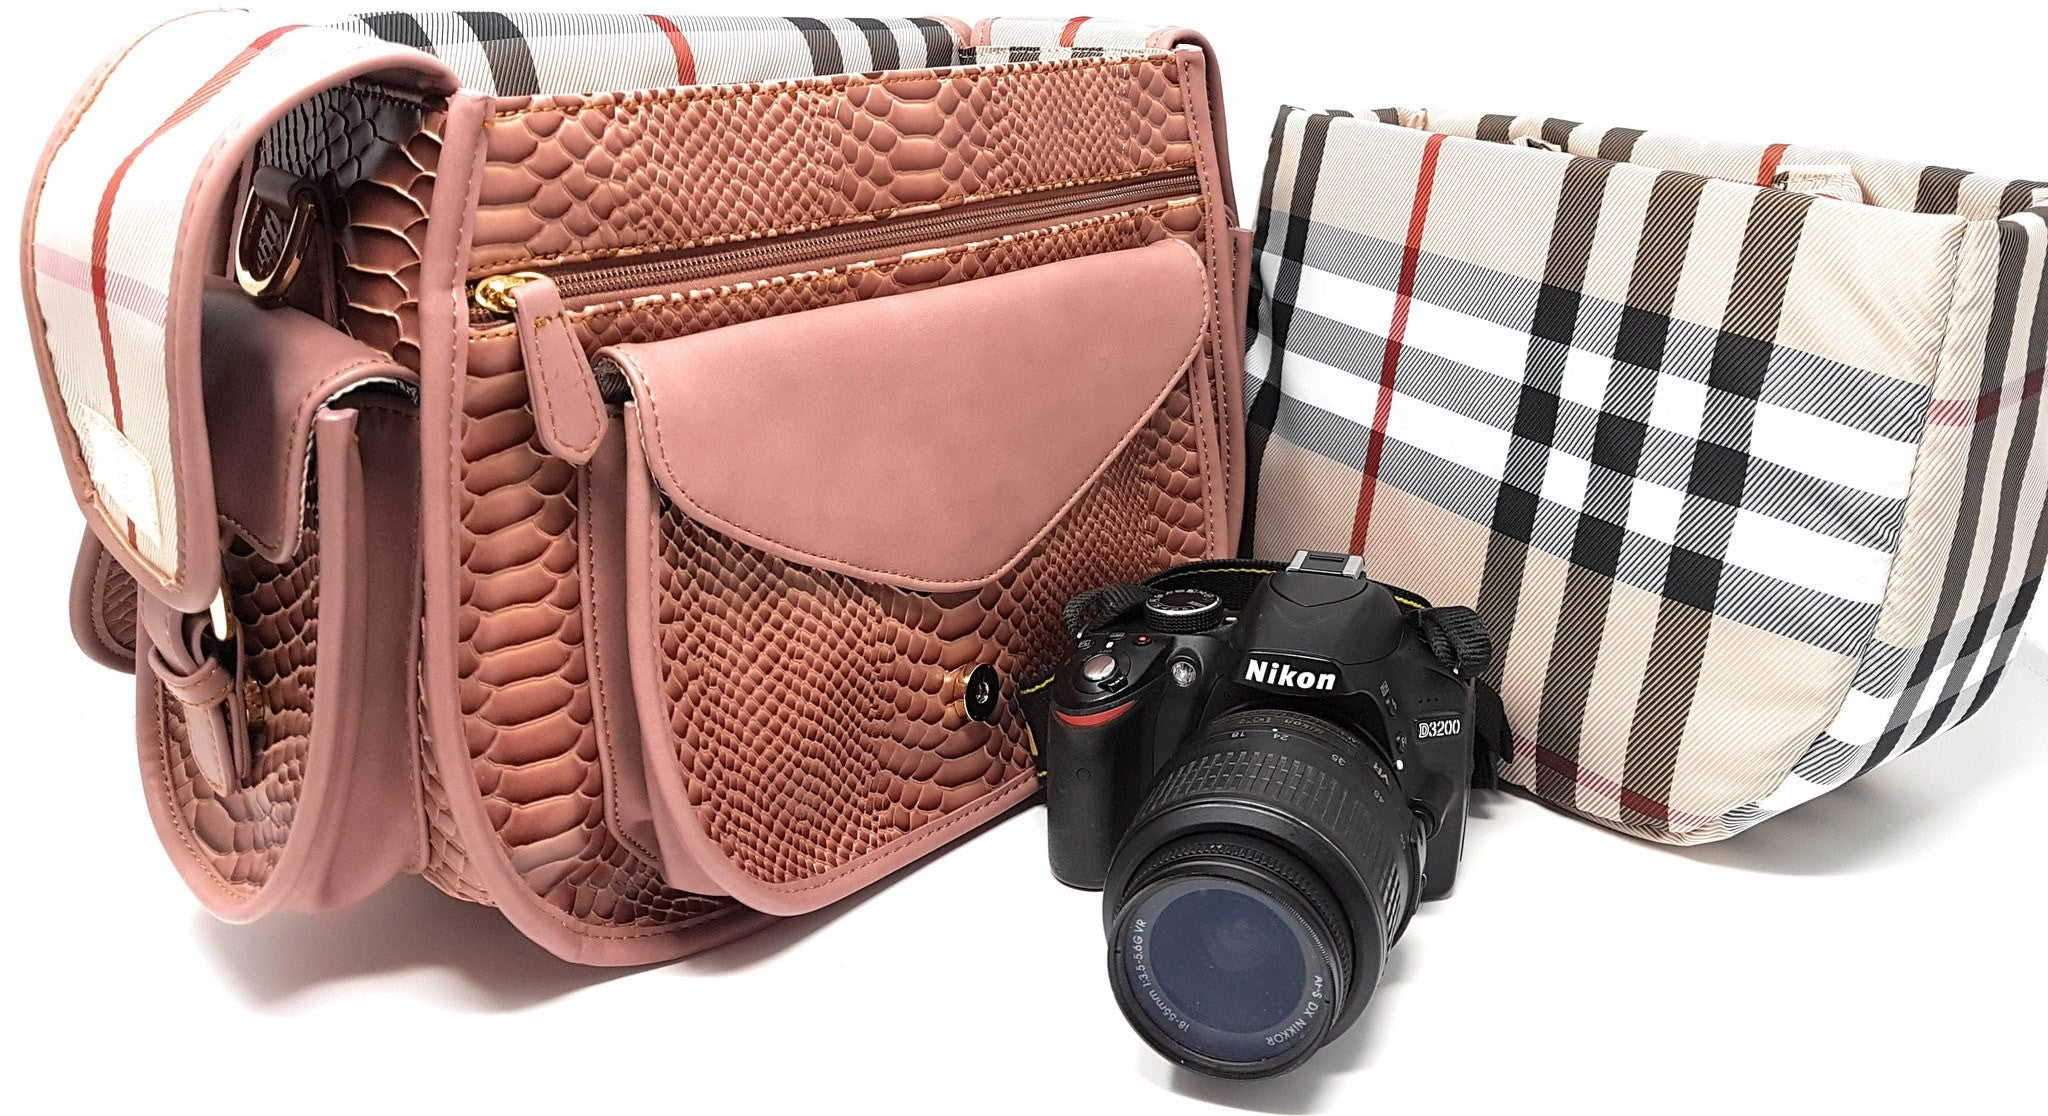 Camera Bags - Purple Relic: Camera DSLR Faux Snake Skin Saddle Bag With Padding; Removable Insert; Fits Standard Size DSLR With Lens For Canon Nikon Sony;